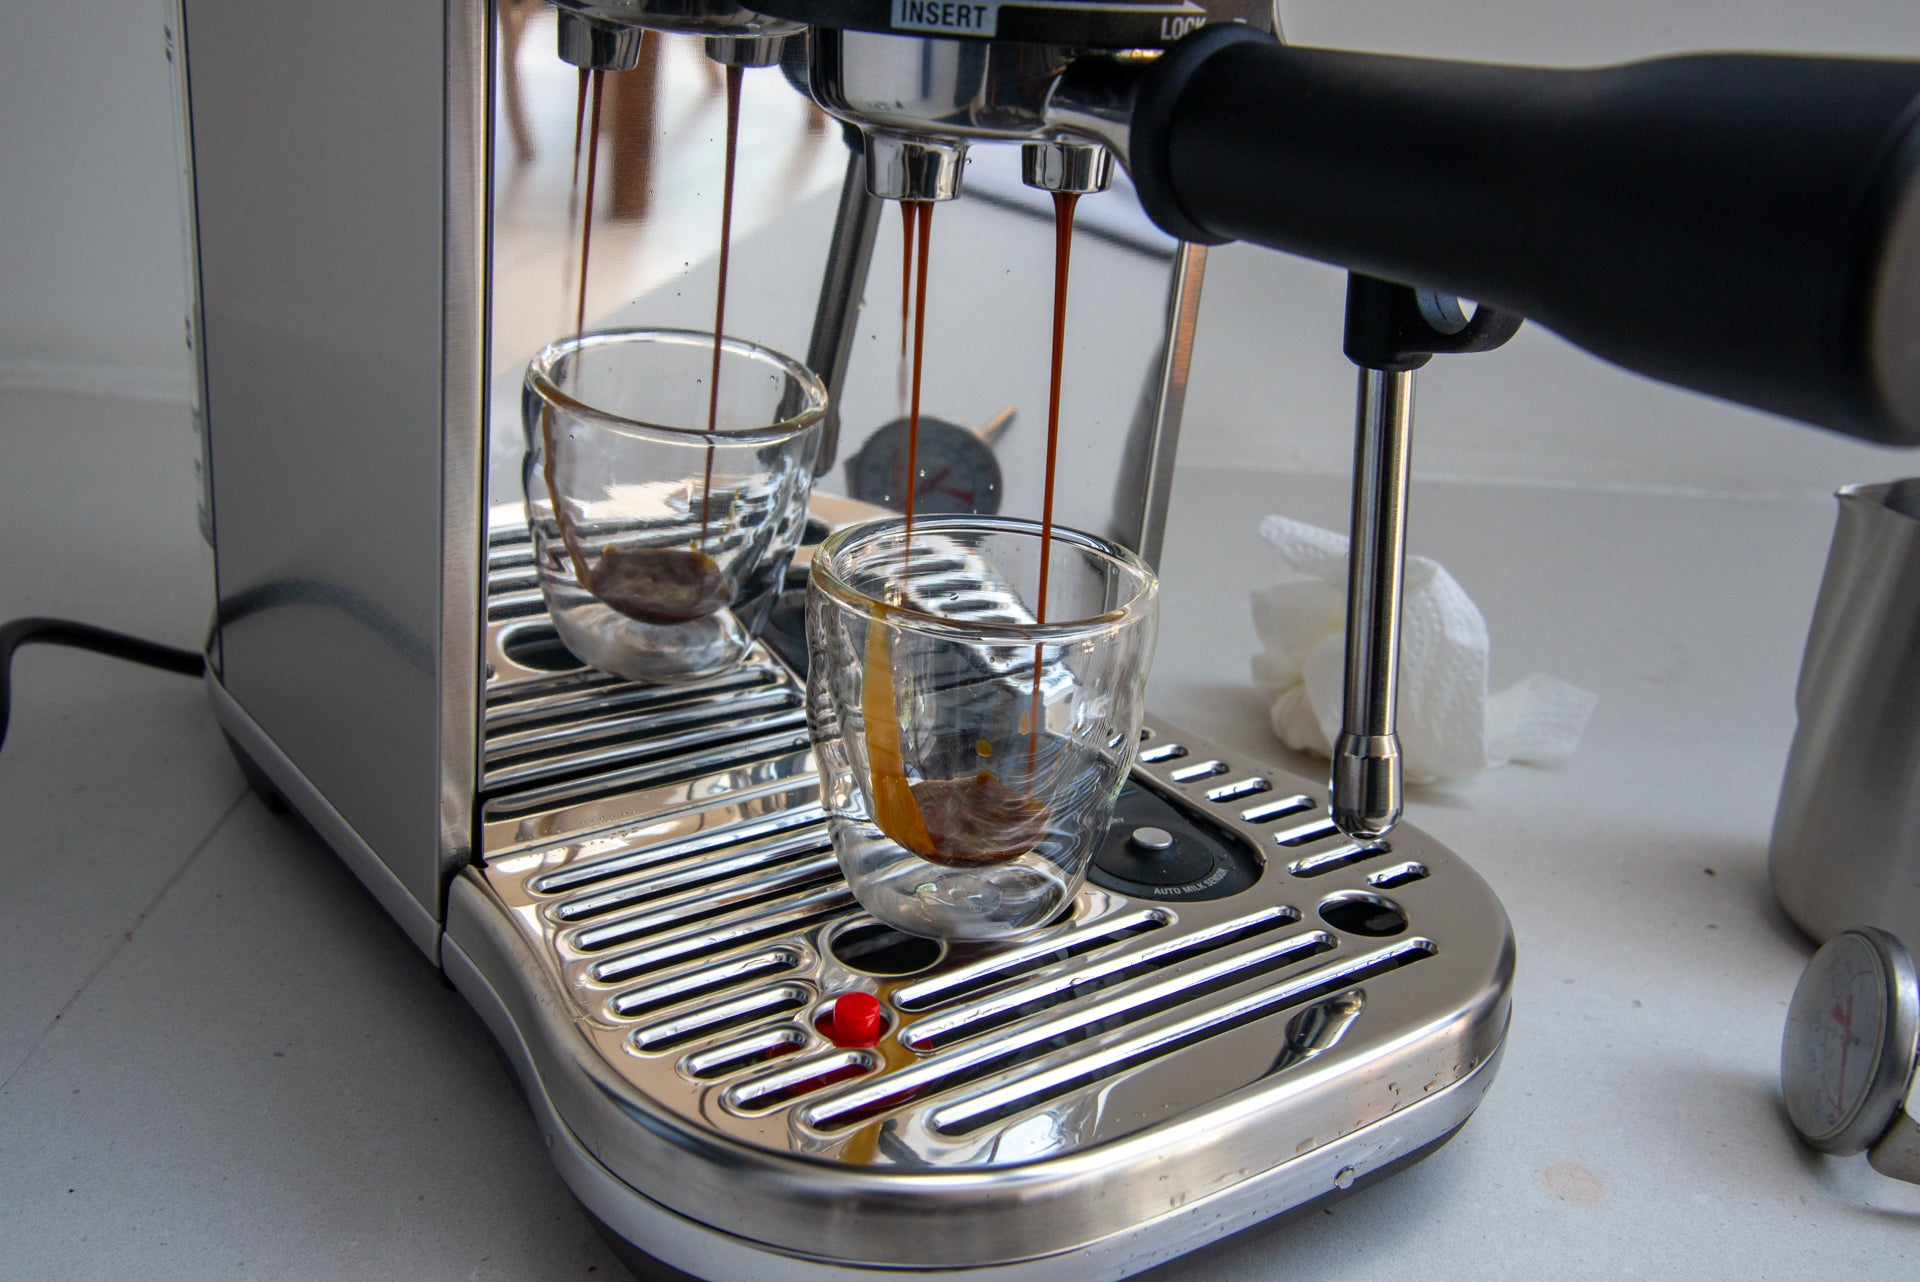 Best coffee machine 2020: Espresso, bean-to-cup, filter ...